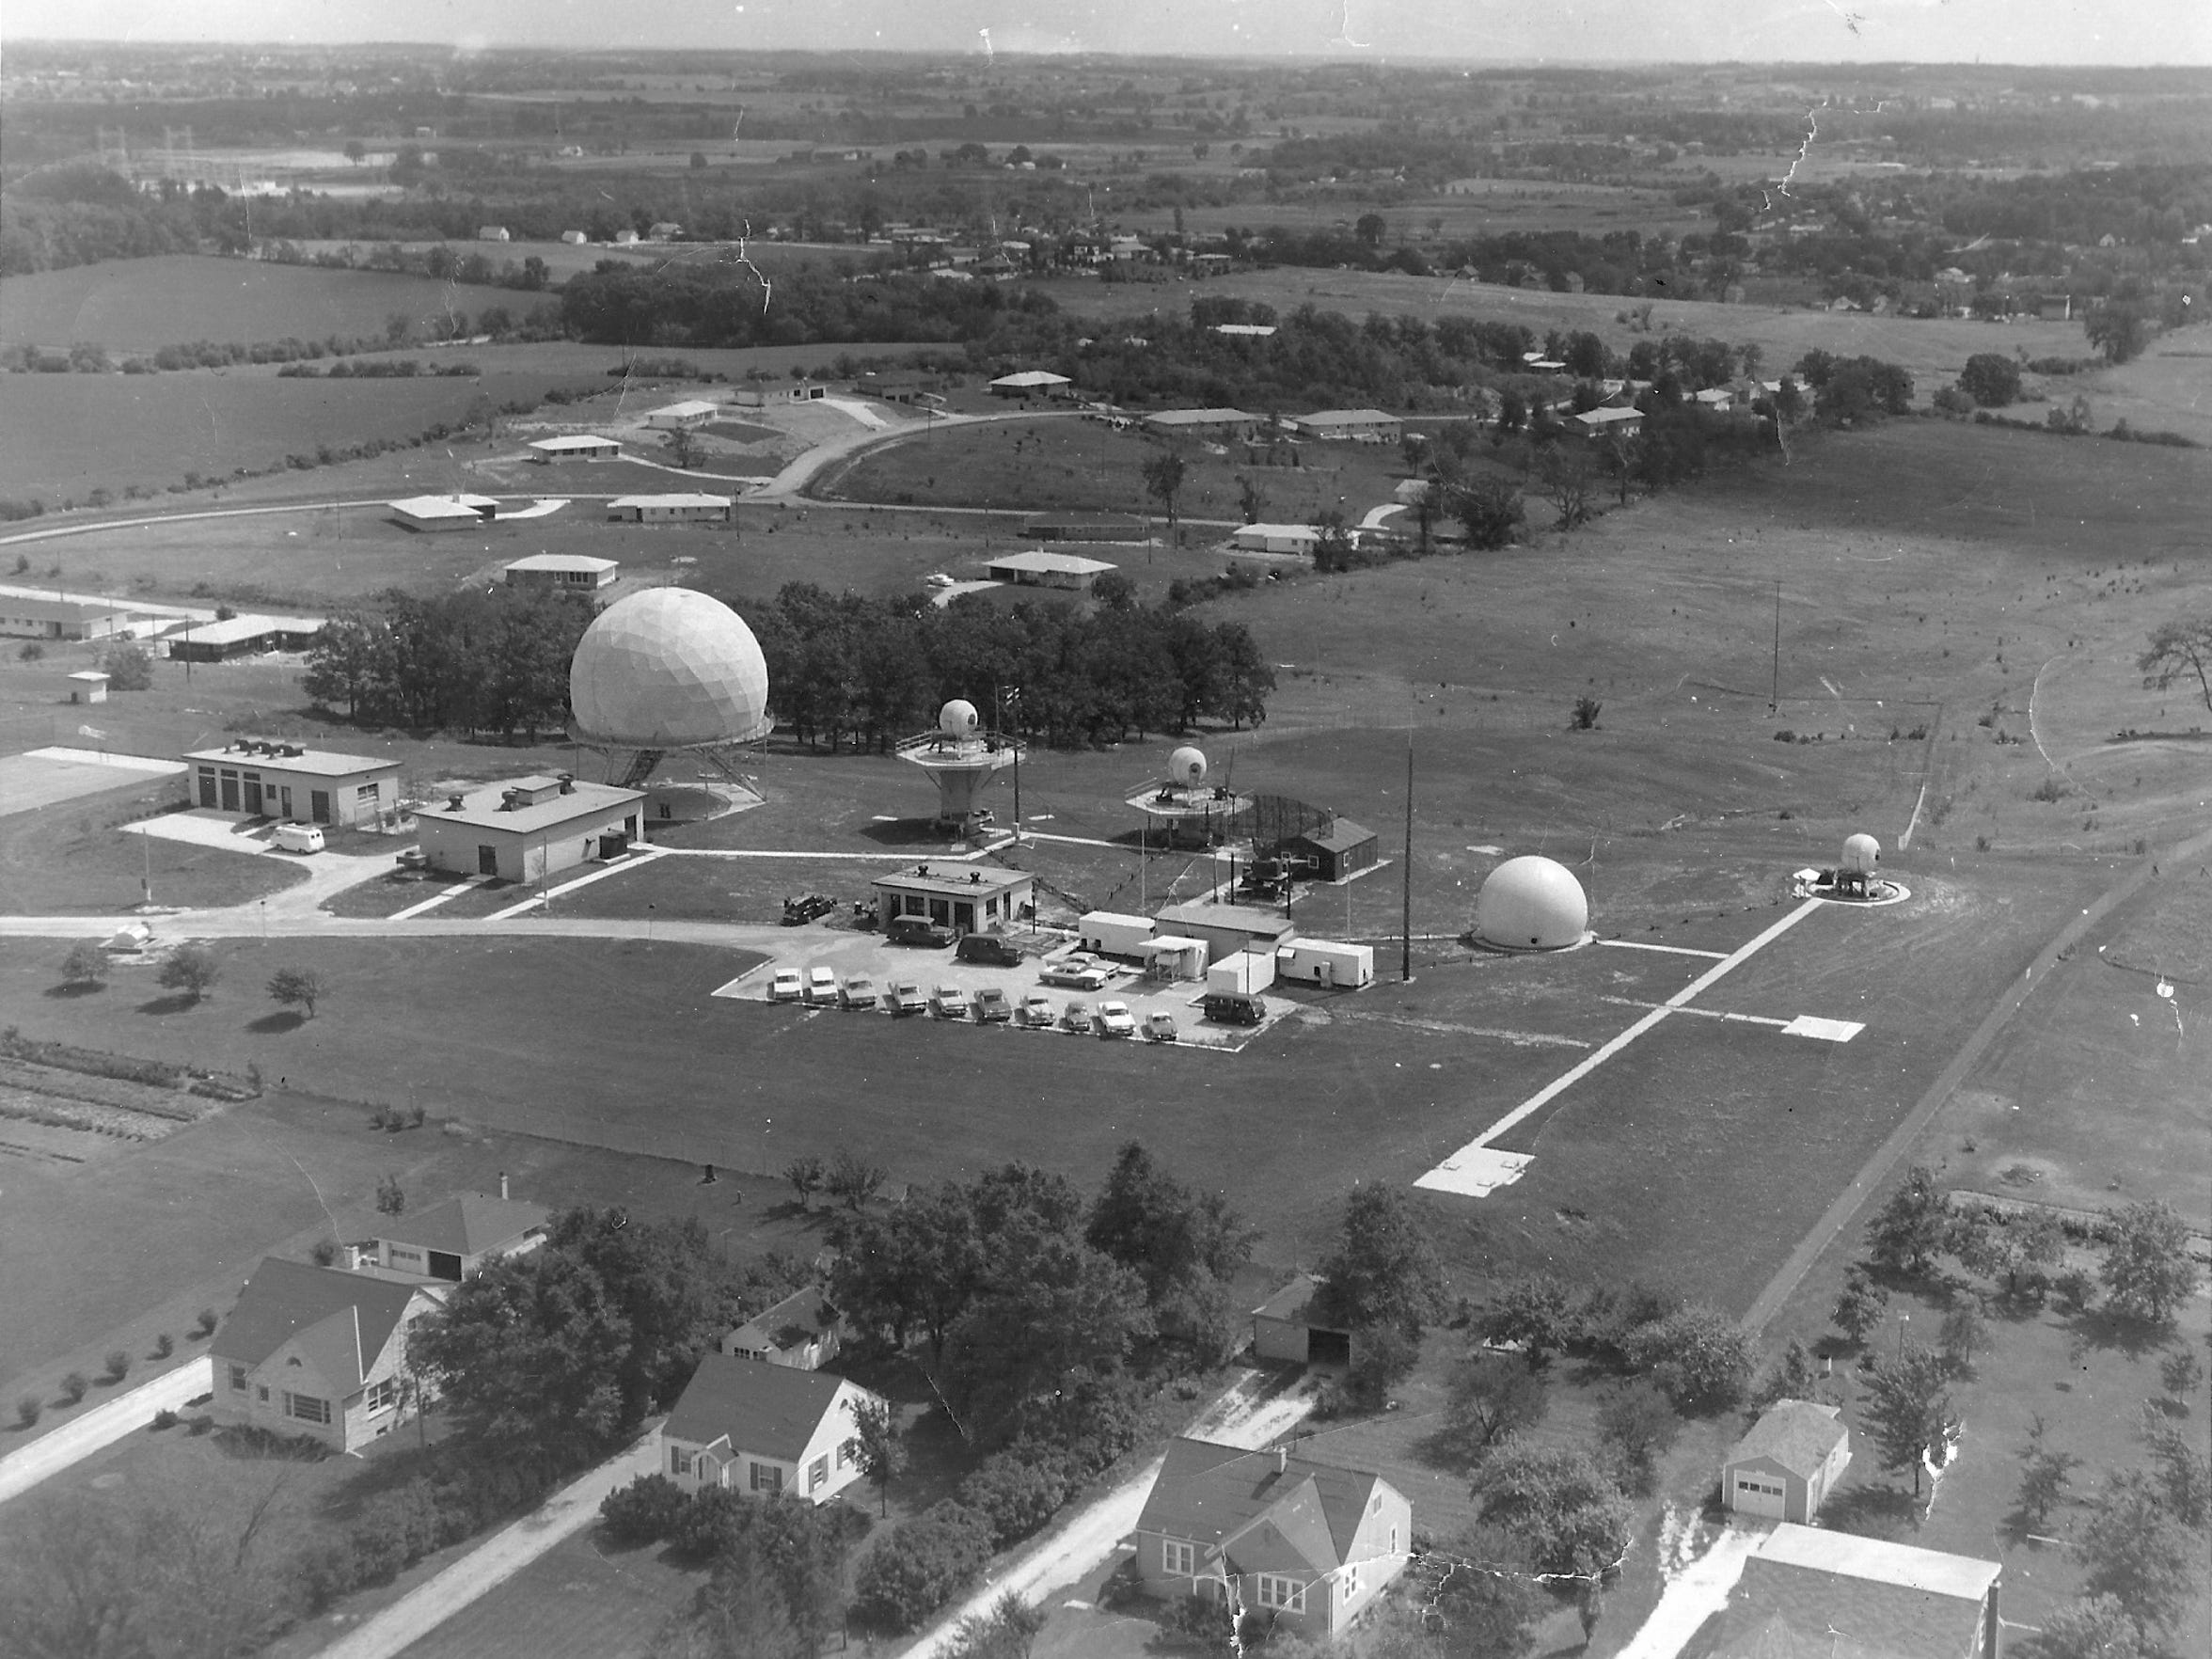 The M-74 Integrated Fire Control site in Waukesha (shown